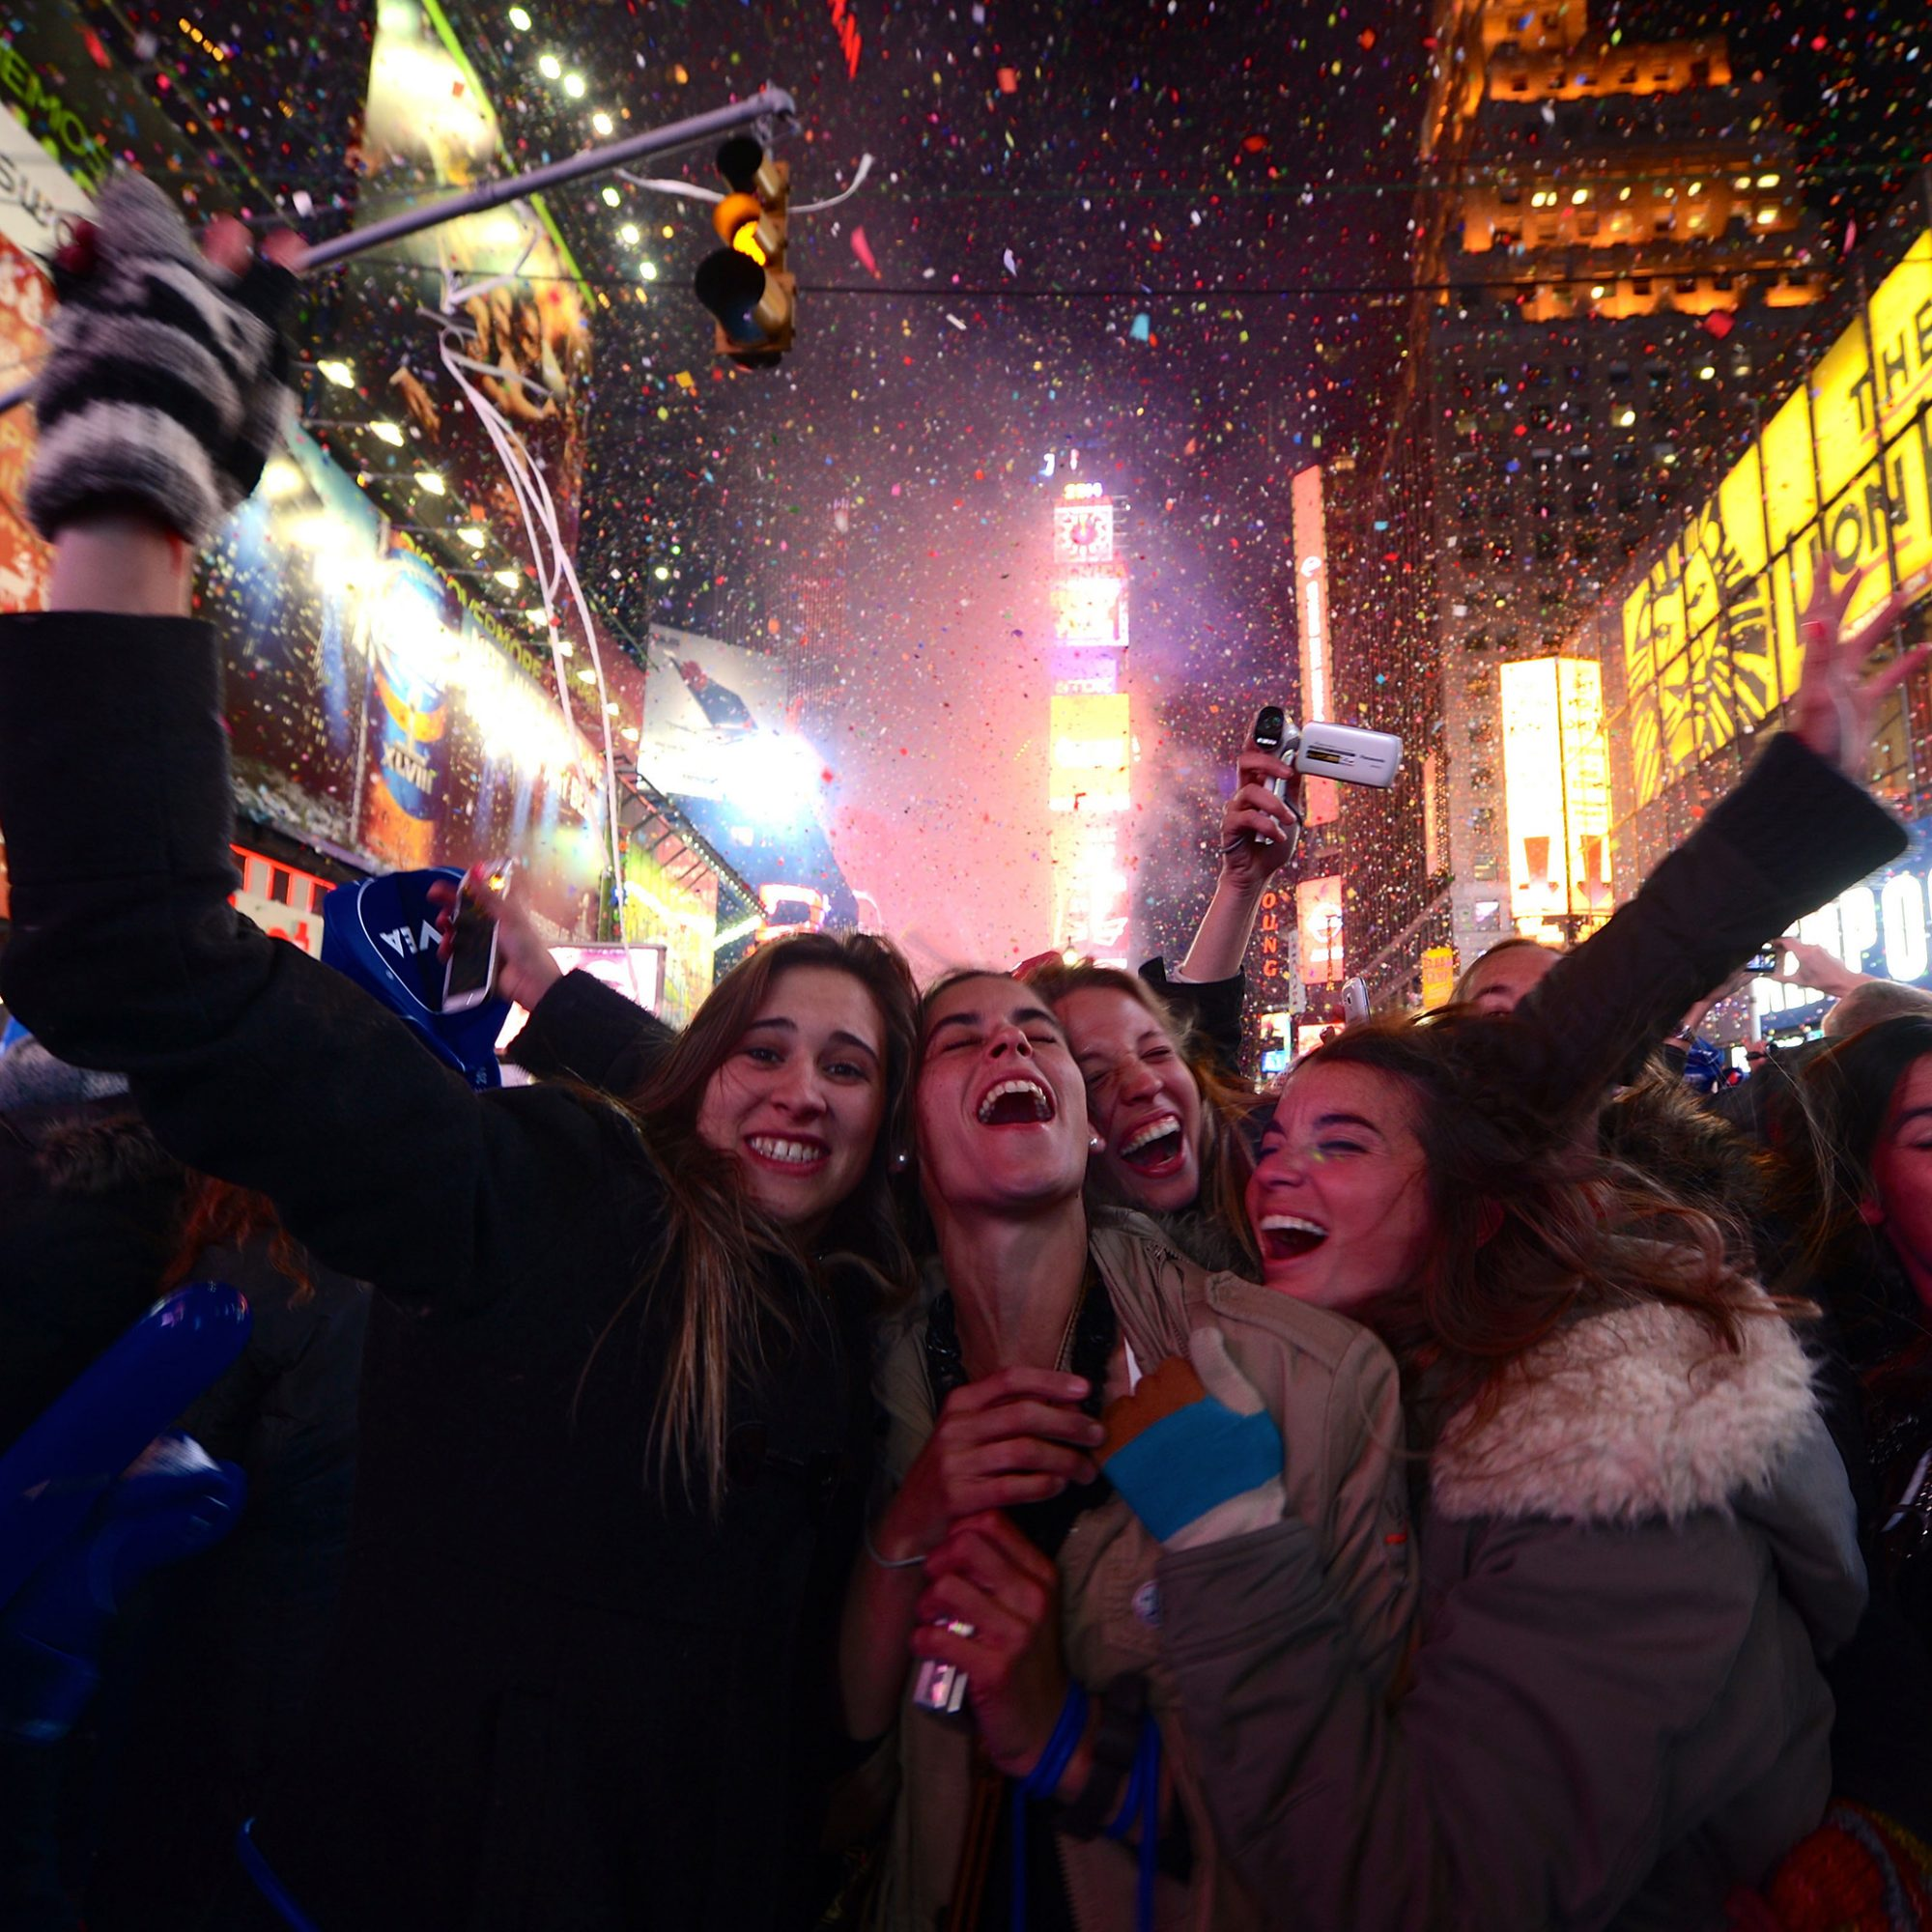 Times Square Olive Garden Charging 400 For New Year S Eve Still Manages To Be Cheaper Than